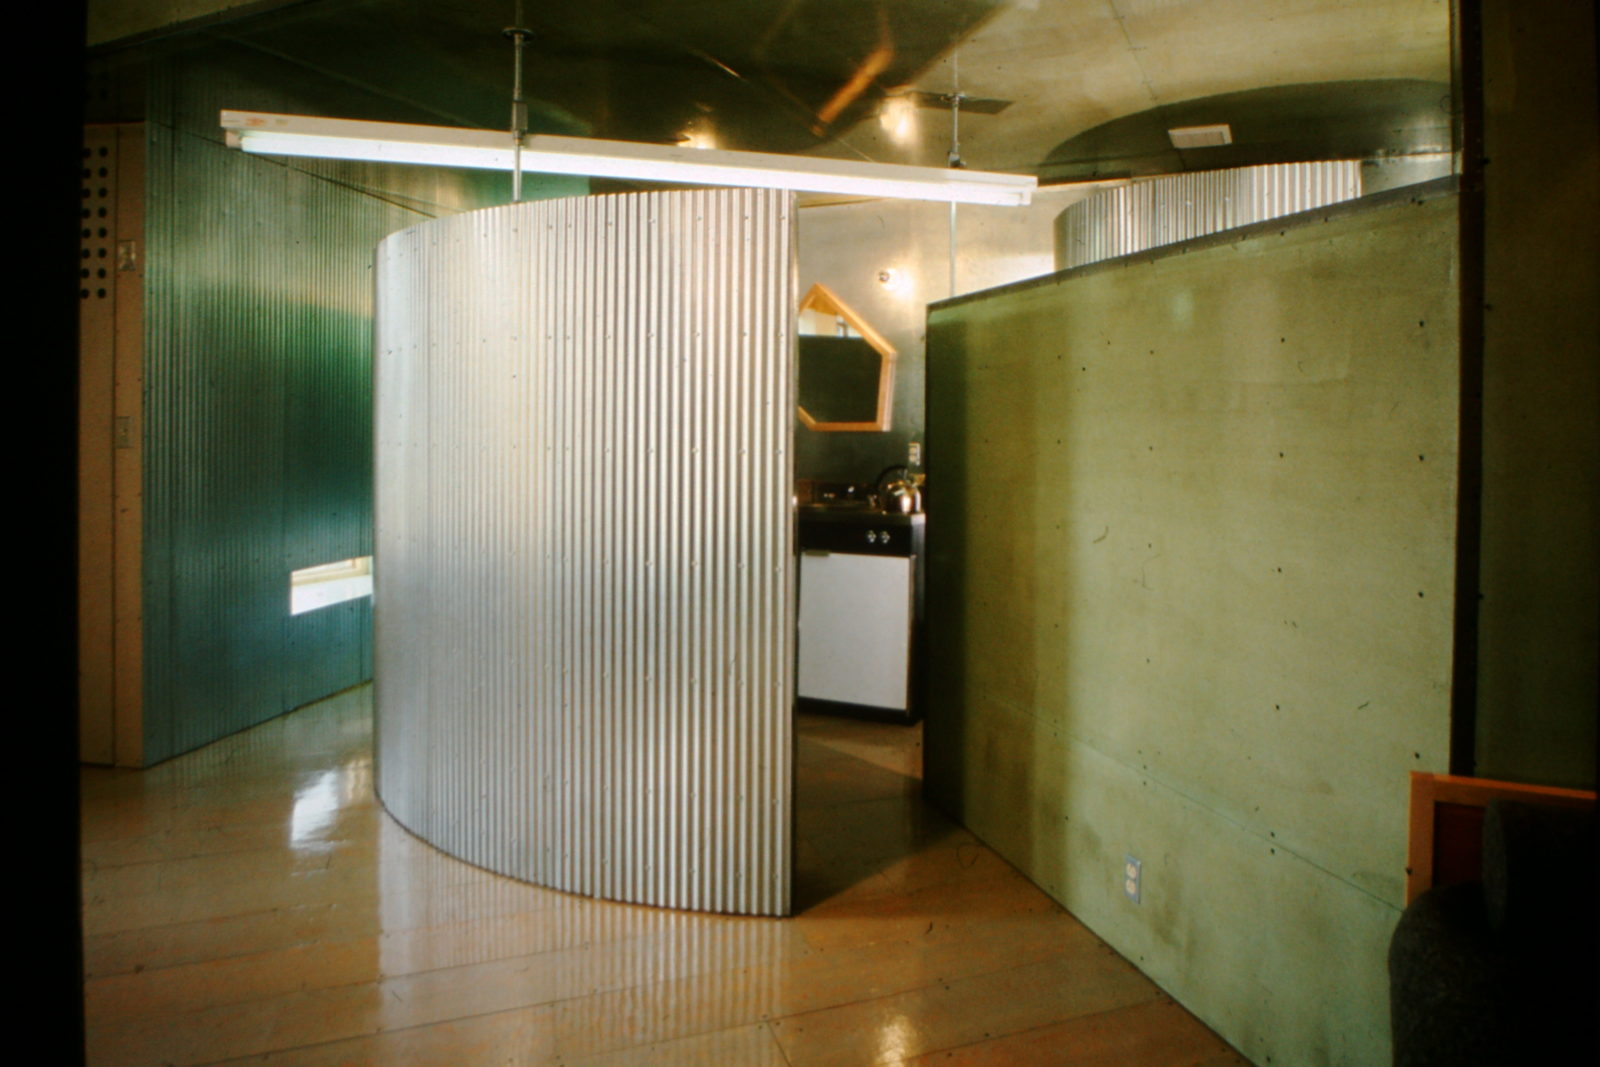 Institutional Green: Materialized, Sensorialized